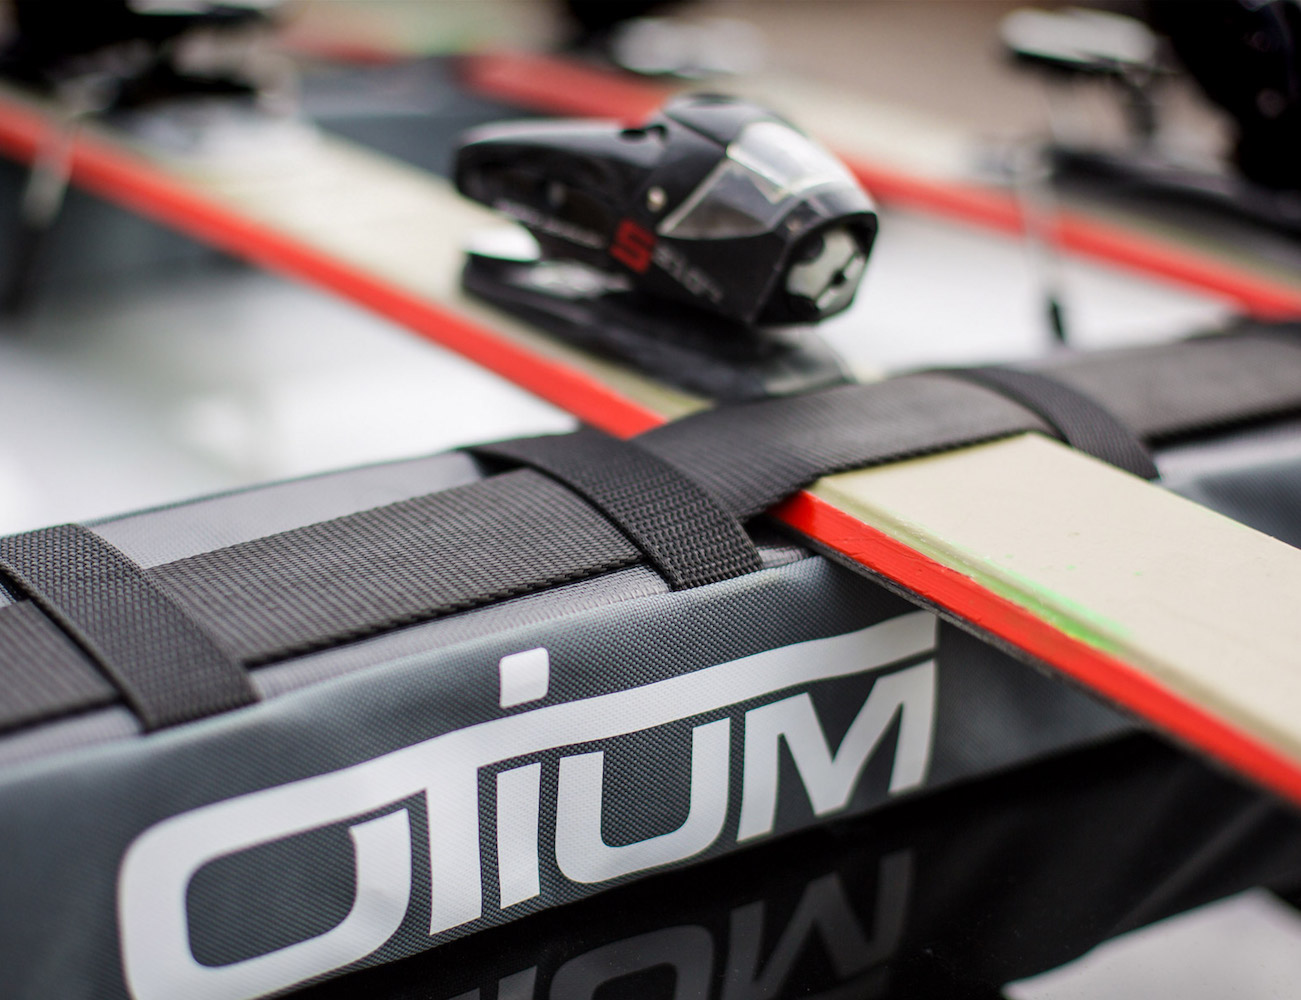 otium-soft-vehicle-rack-03